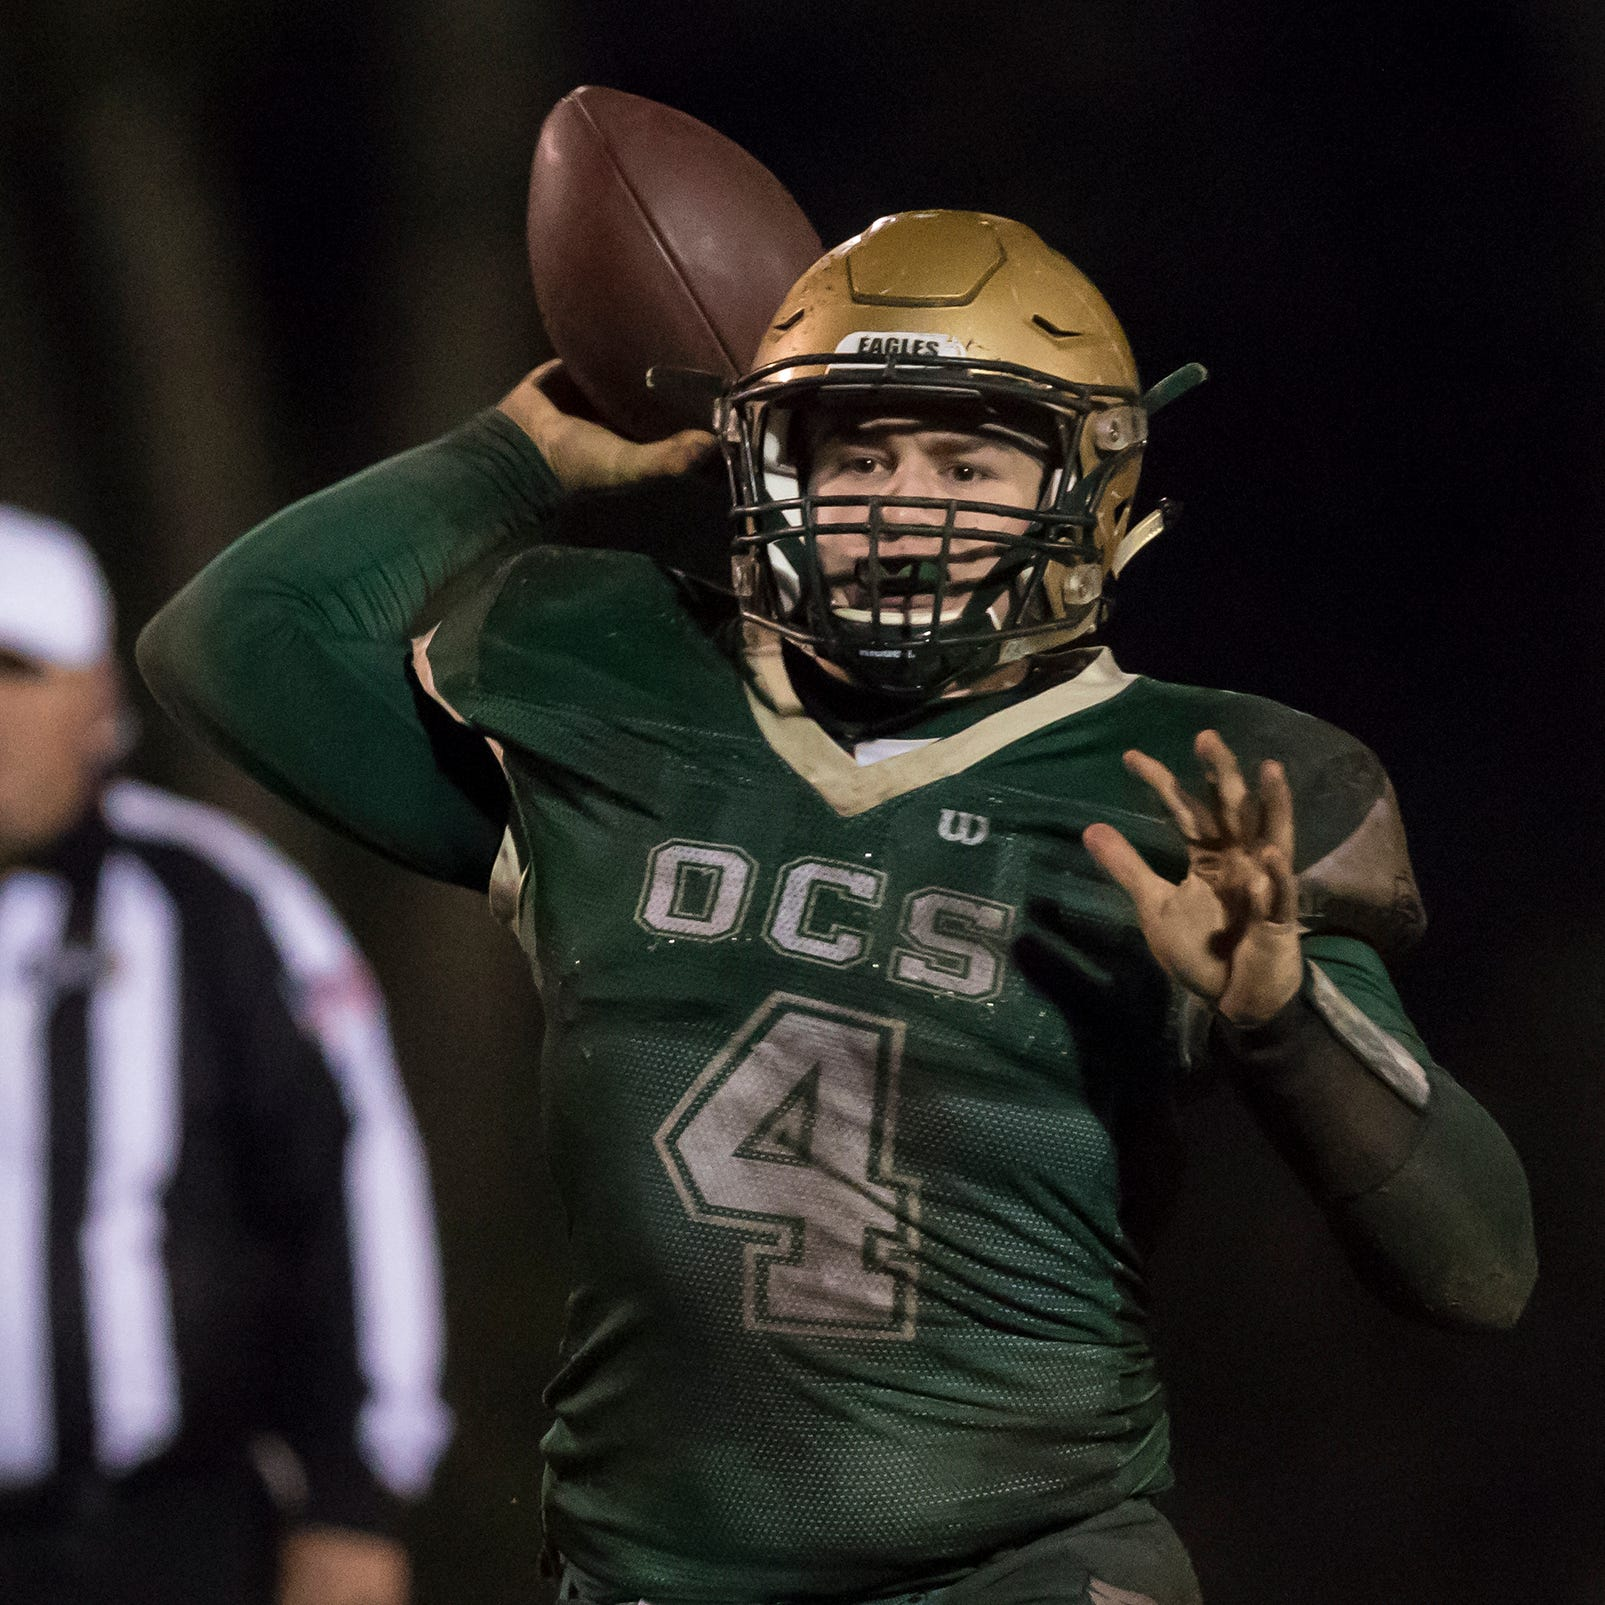 OCS lost to Southern Lab 22-21 in the waning seconds of the fourth quarter to be eliminated from the playoffs.